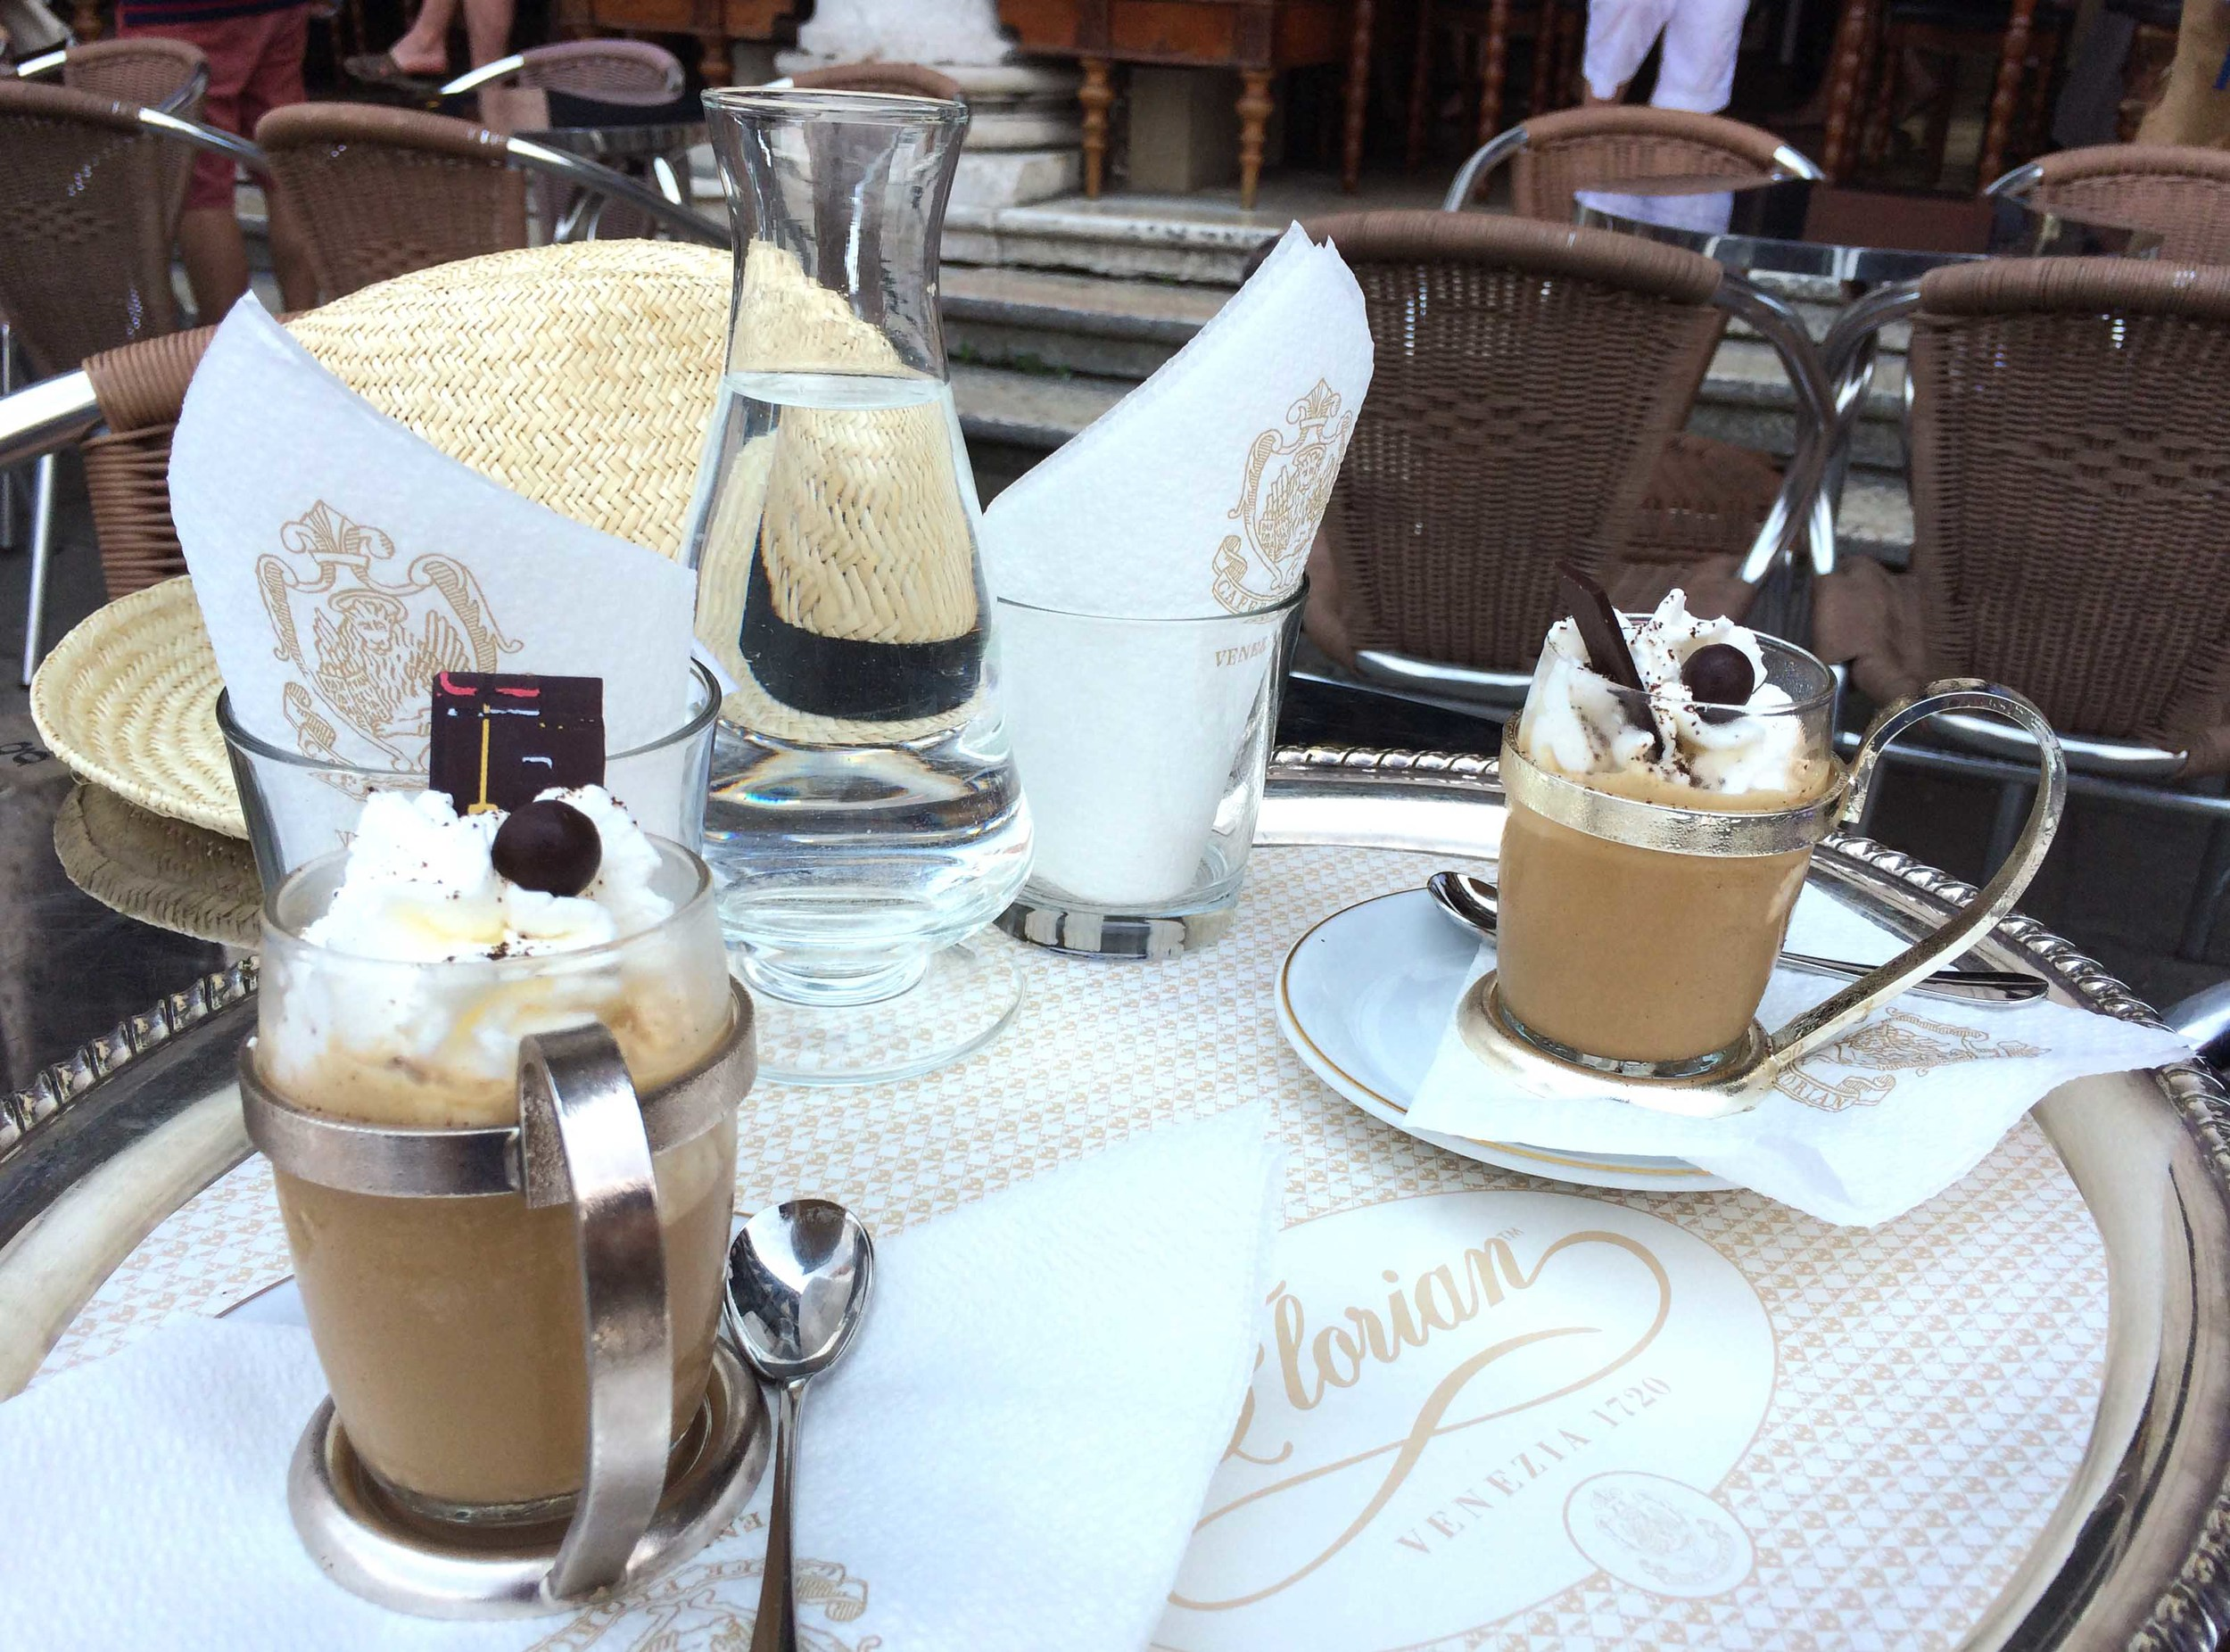 Al fresco at the famed Cafe Florian.